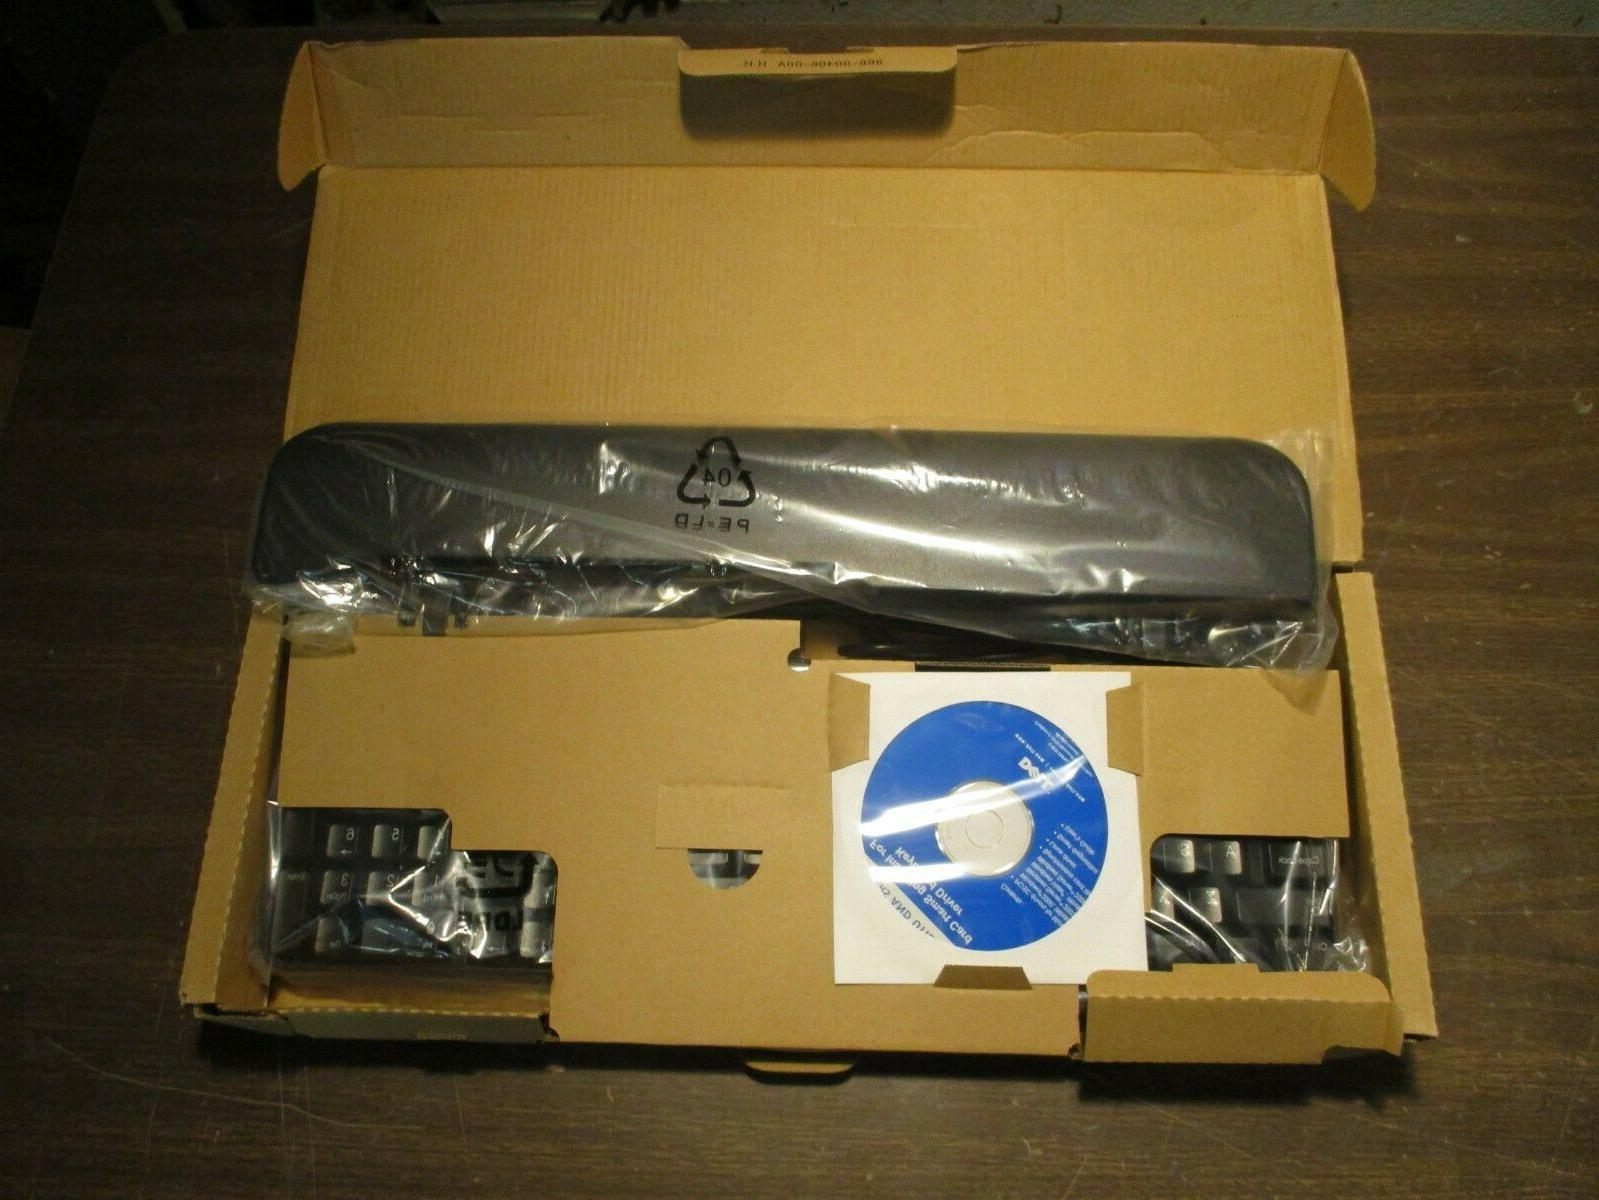 New Dell SK-3205 104 Key Wired USB Keyboard KW240 Smart Card